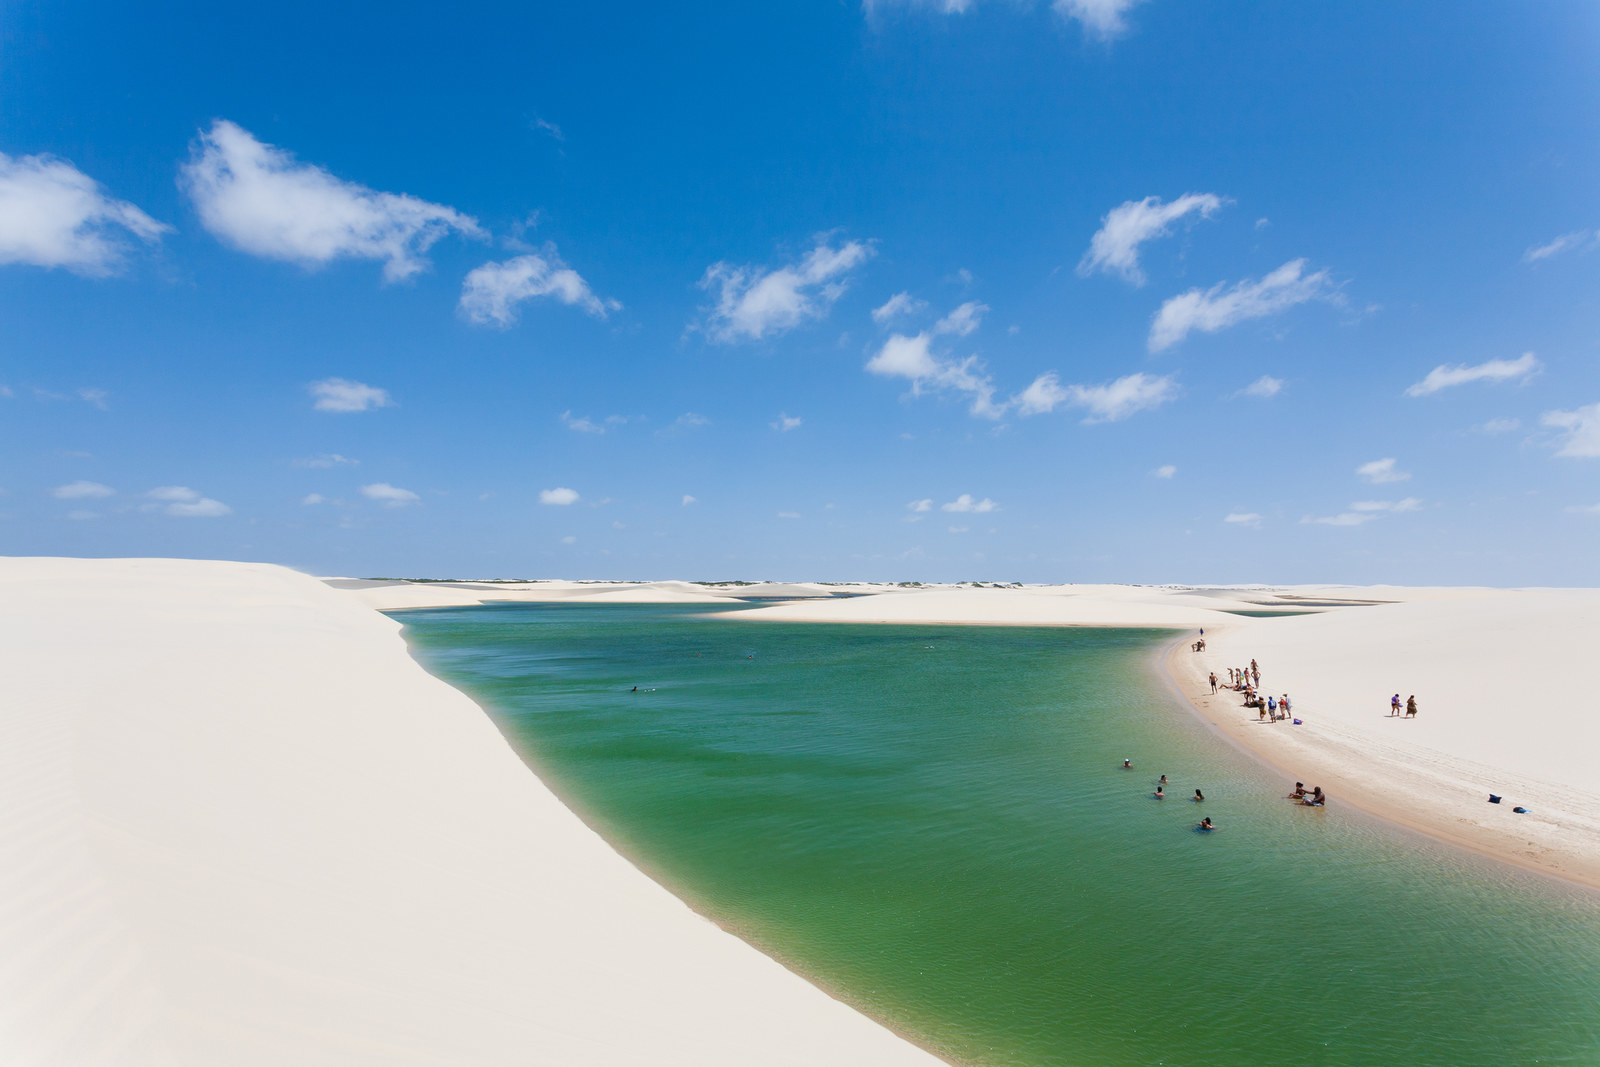 Brazil: Lençóis Maranhenses National Park -  When the rainy season comes around, these rolling sand dunes become speckled with crystal-clear, turquoise lagoons.